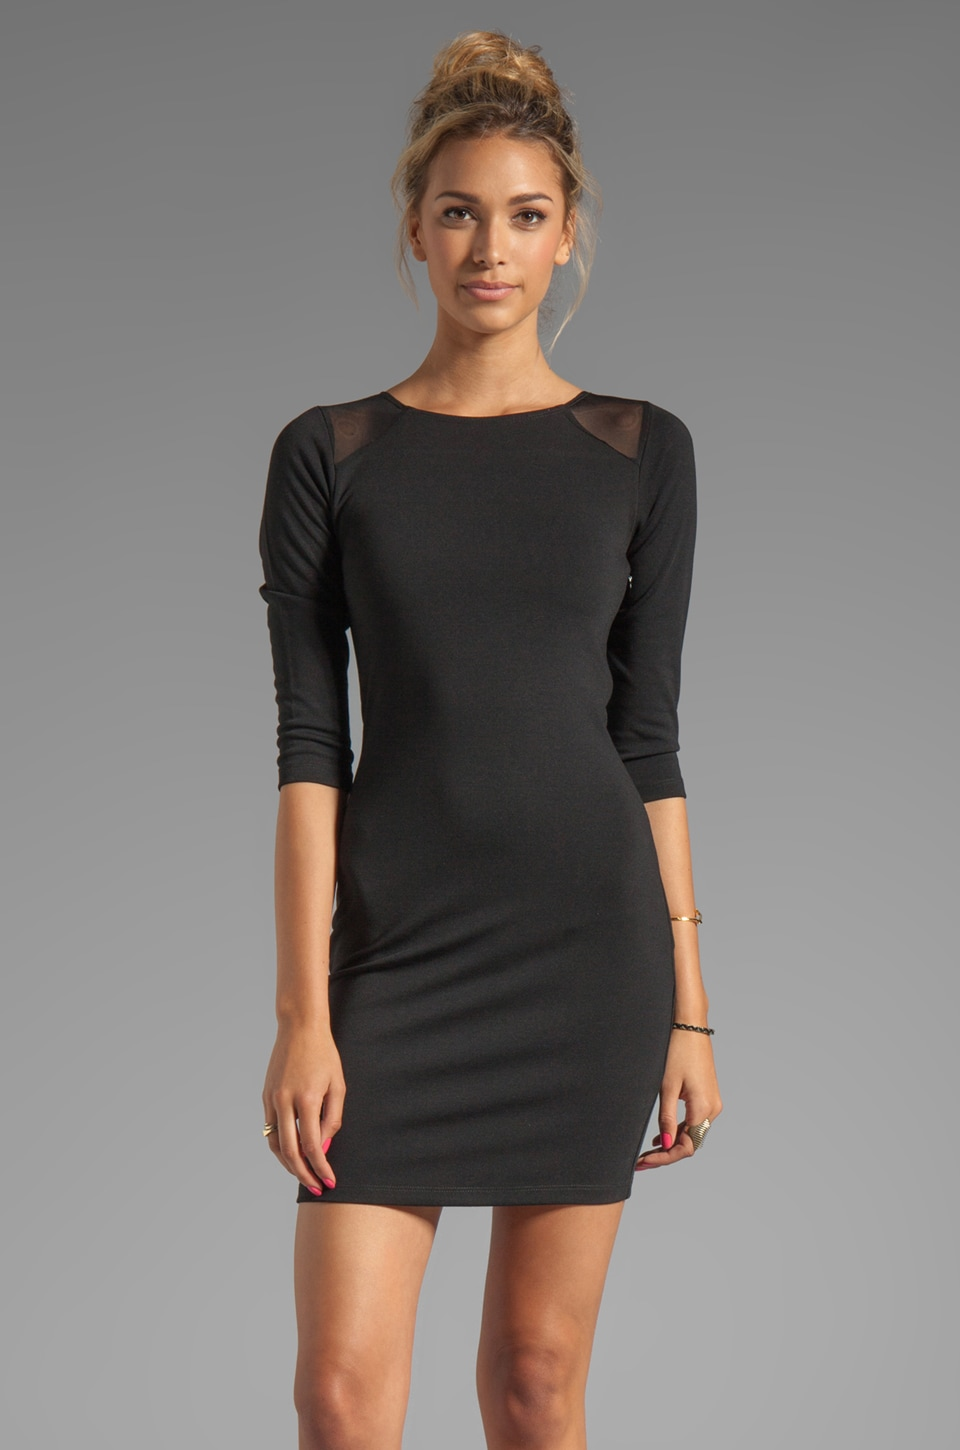 Central Park West Sparks Long Sleeve Ponte/Mesh Dress in Black